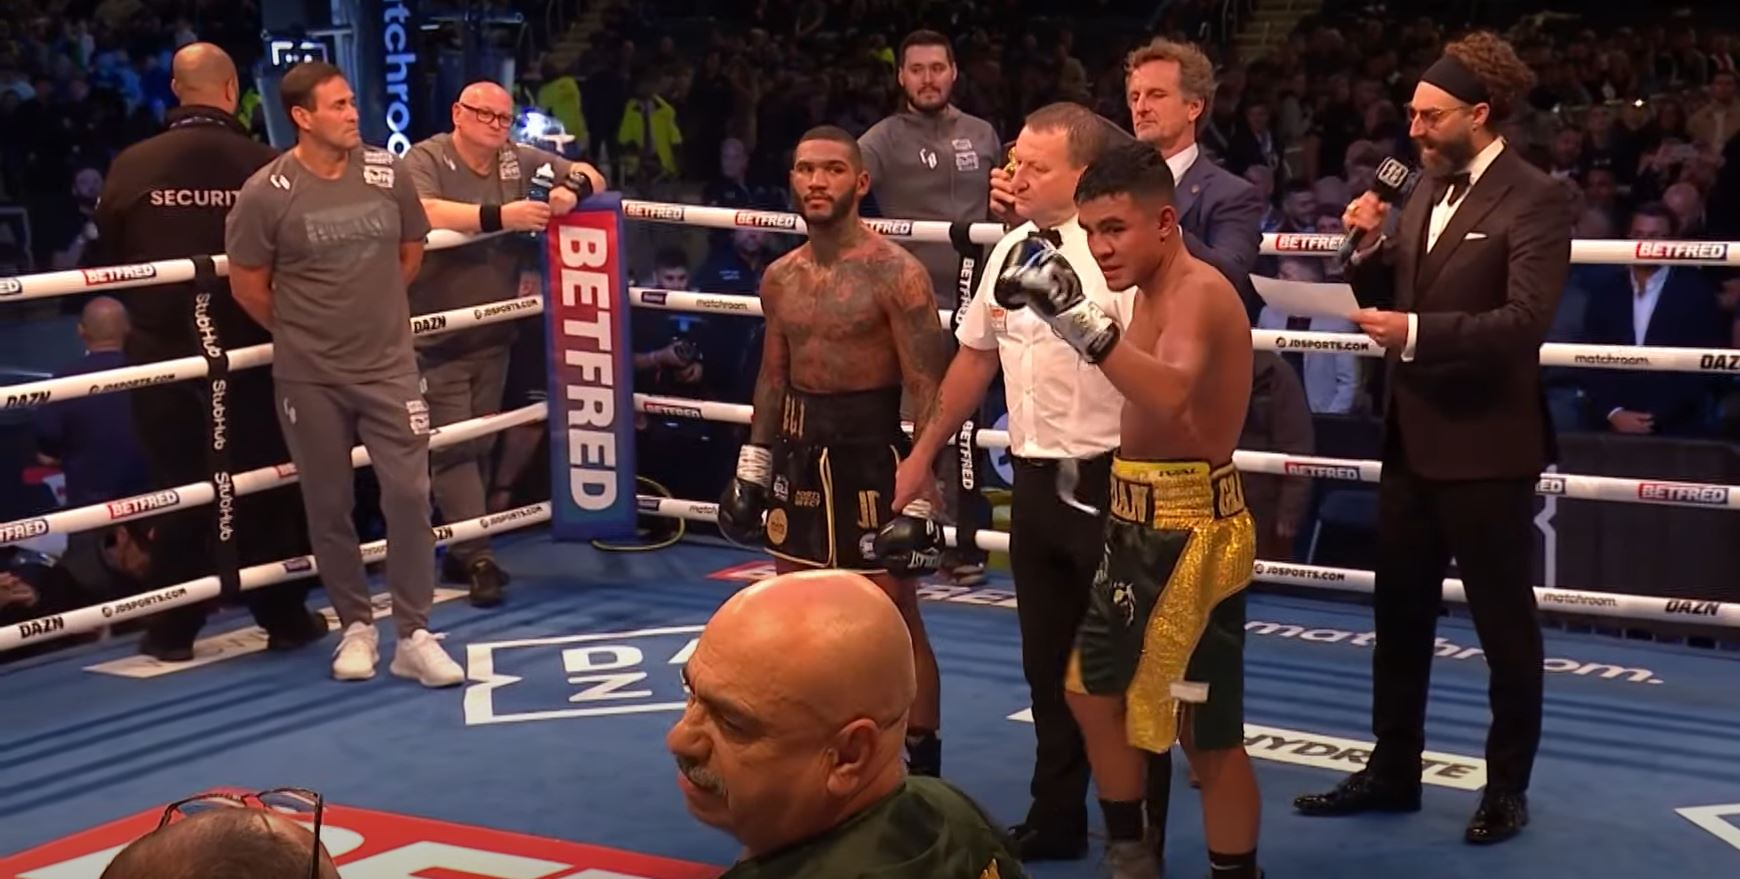 Son Of Boxing Legend Goes 19-0 and Continues To Roll On